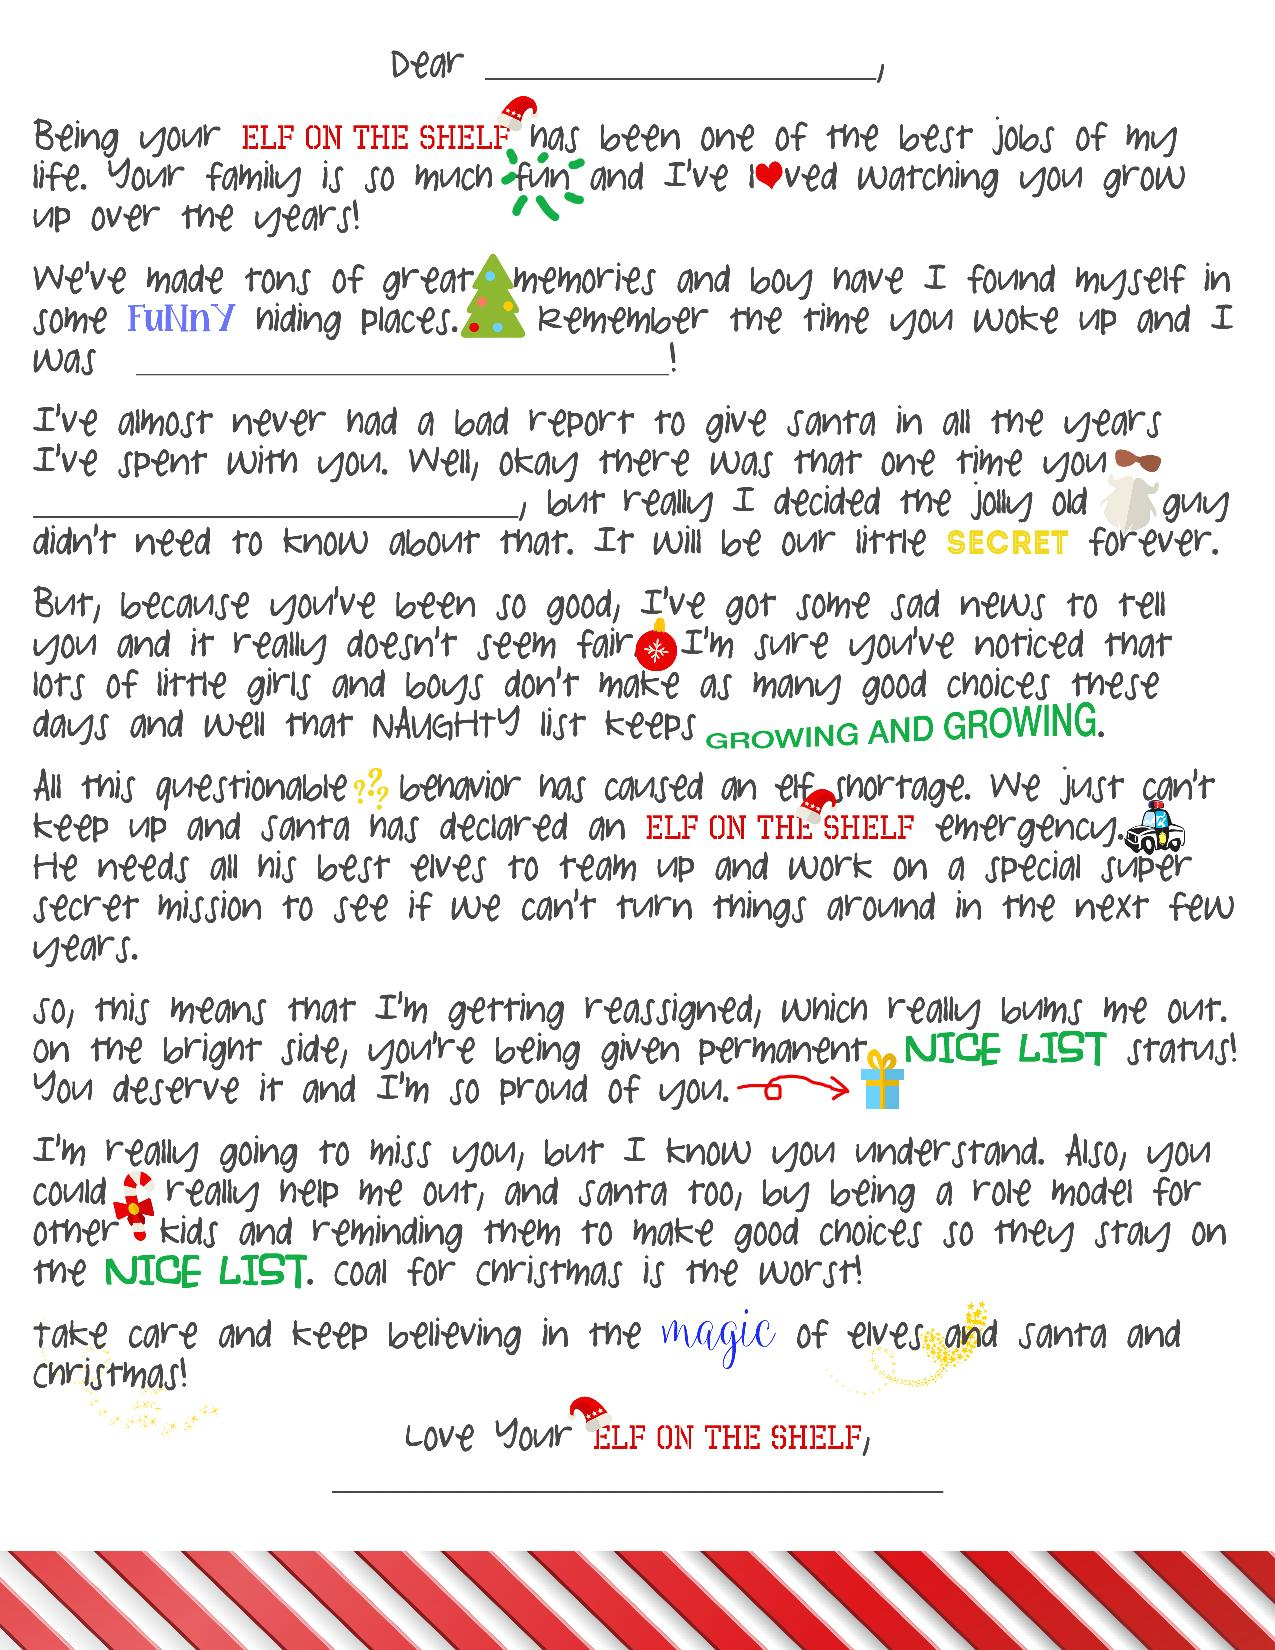 An Elf On The Shelf BreakUp Letter